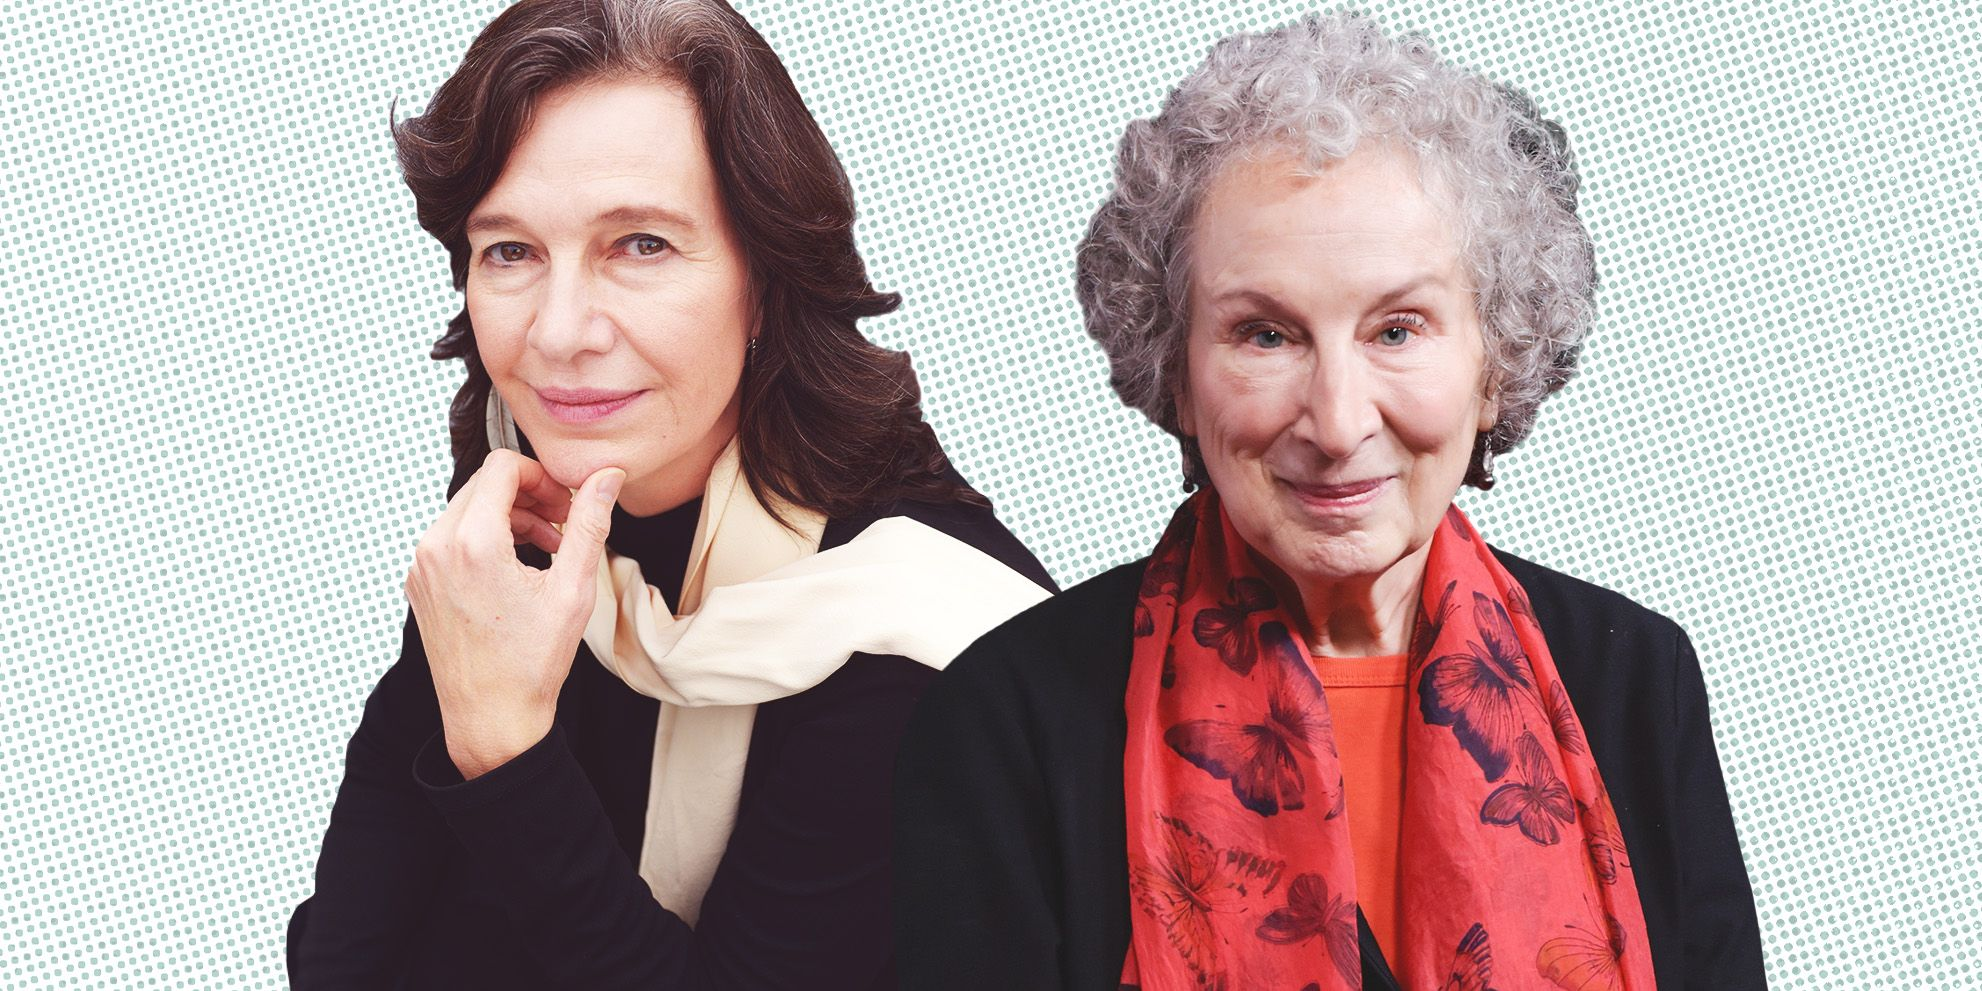 Inside the Dystopian Visions of Margaret Atwood and Louise Erdrich